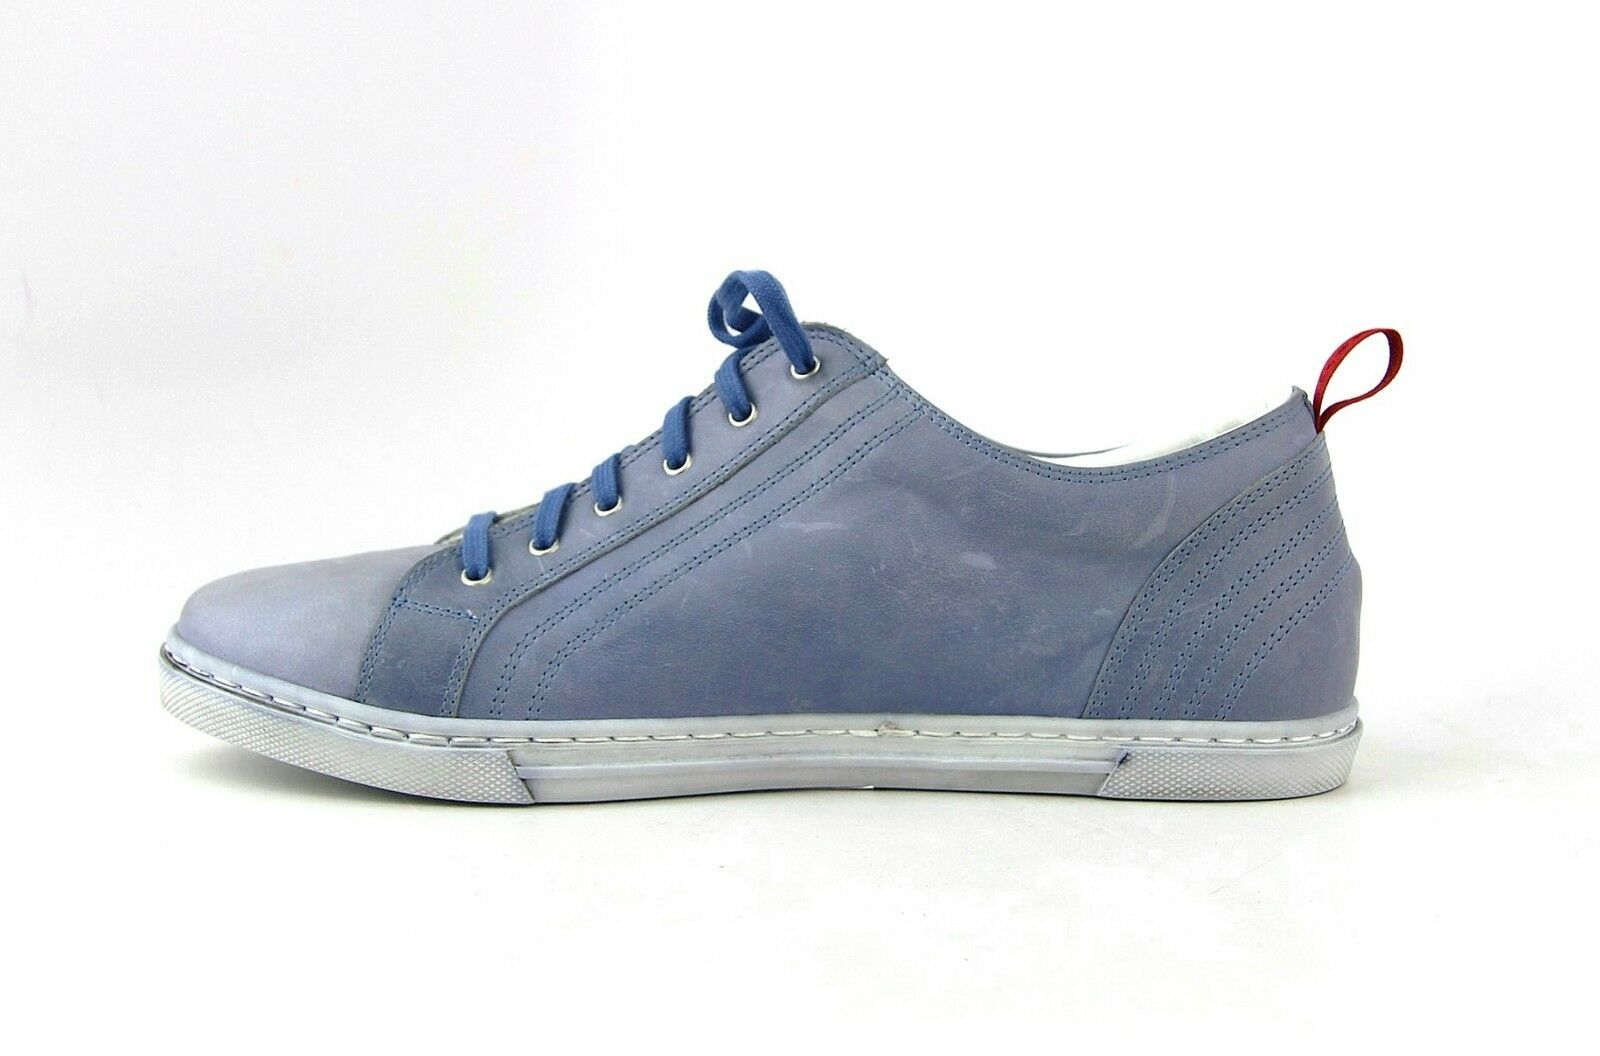 88dd3991b6311 ... KITON HANDMADE SNEAKERS SHOES BLUE 100% LEATHER SIZE SIZE SIZE 7 MADE  IN ITALY 40EU ...